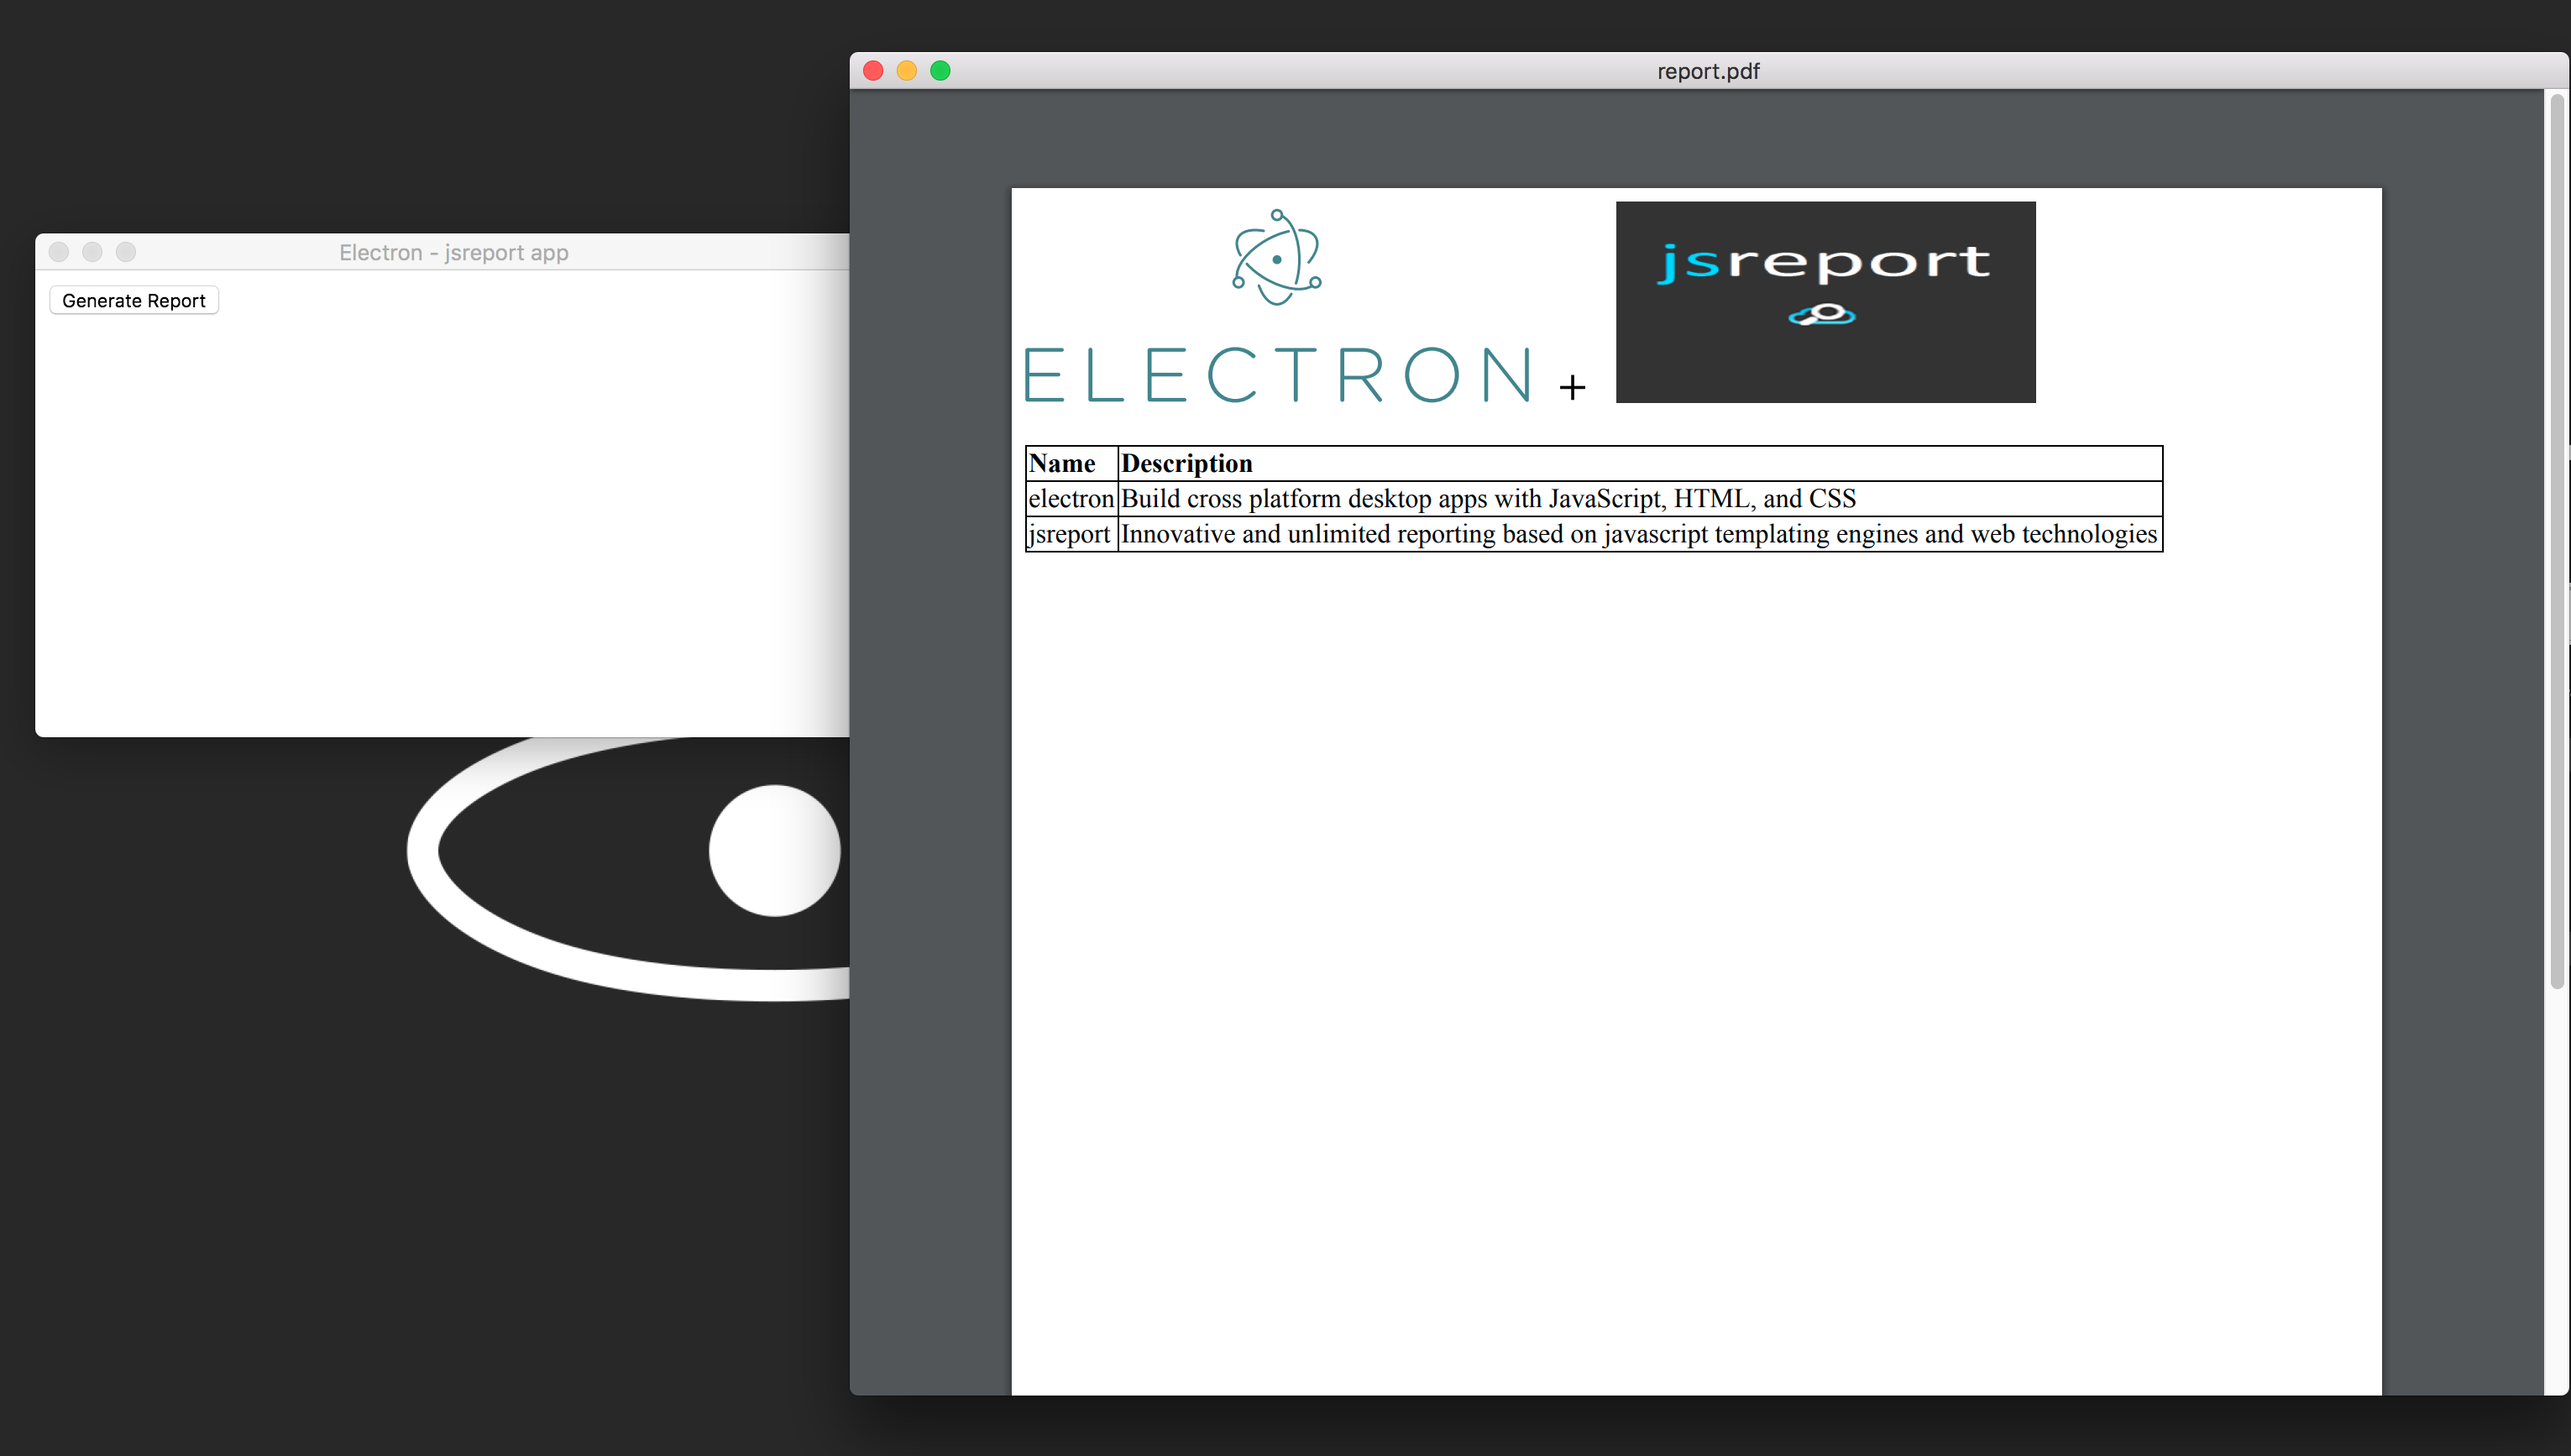 Pdf reports in Electron app